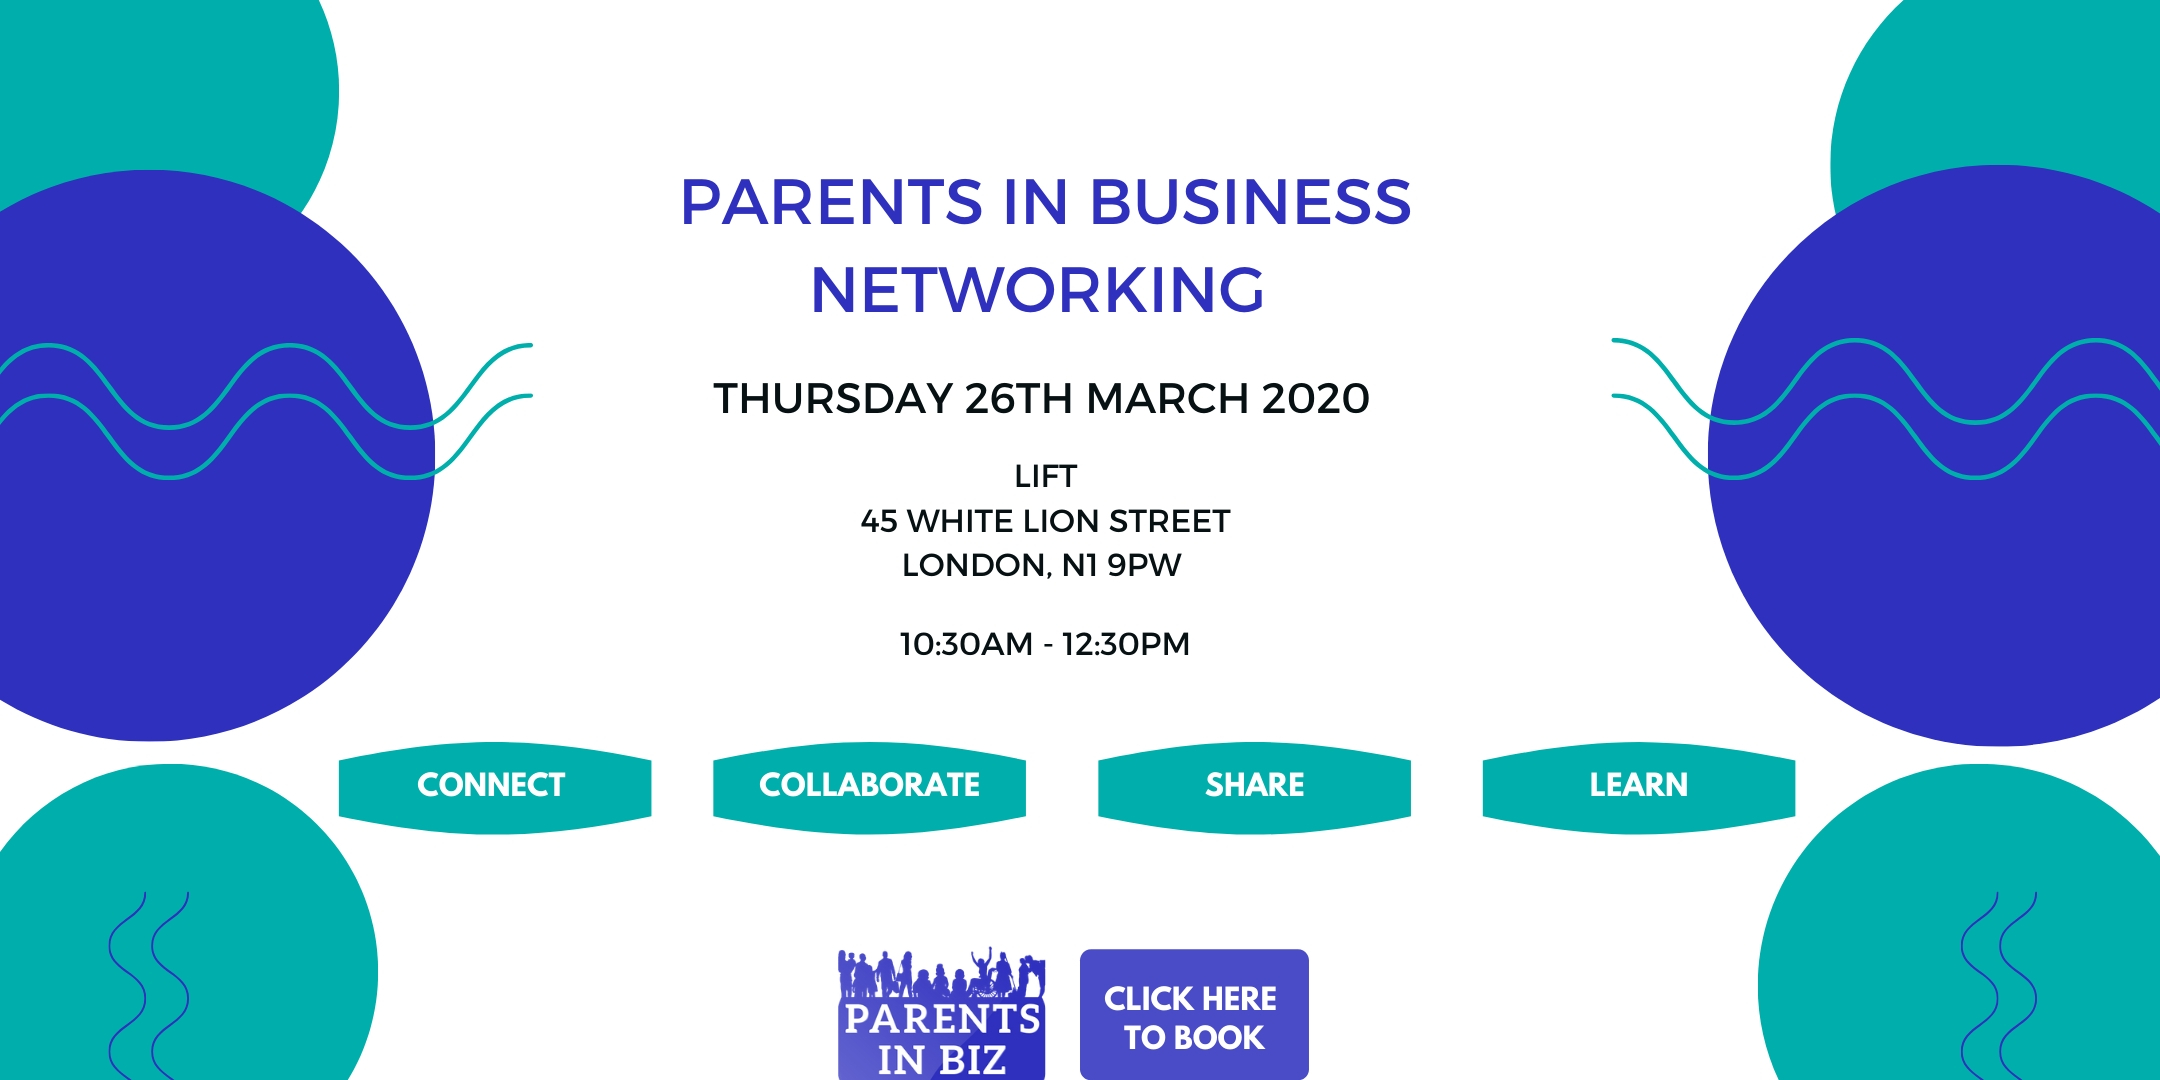 Parents in Business Networking